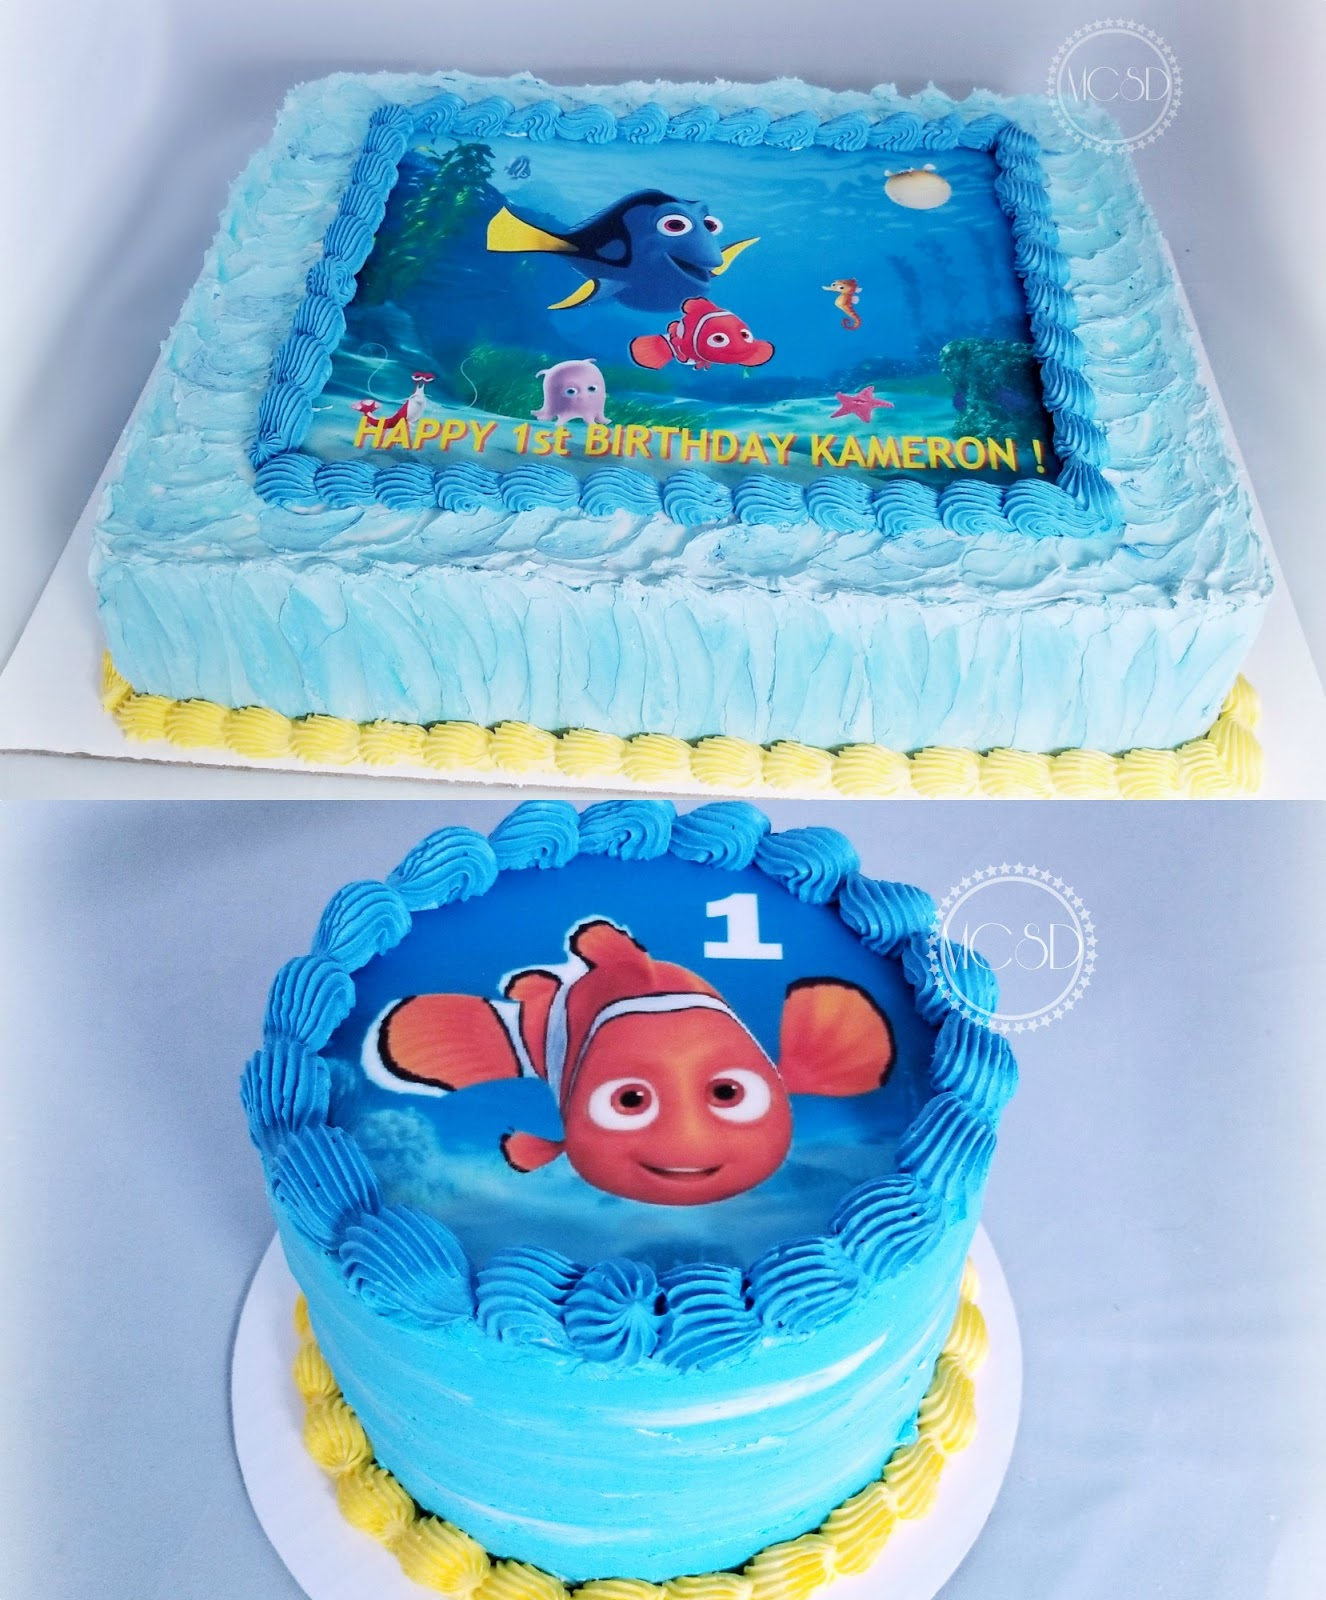 Enjoyable Cakesbyzana Finding Nemo 1St Birthday Cake Smash Cake Funny Birthday Cards Online Elaedamsfinfo